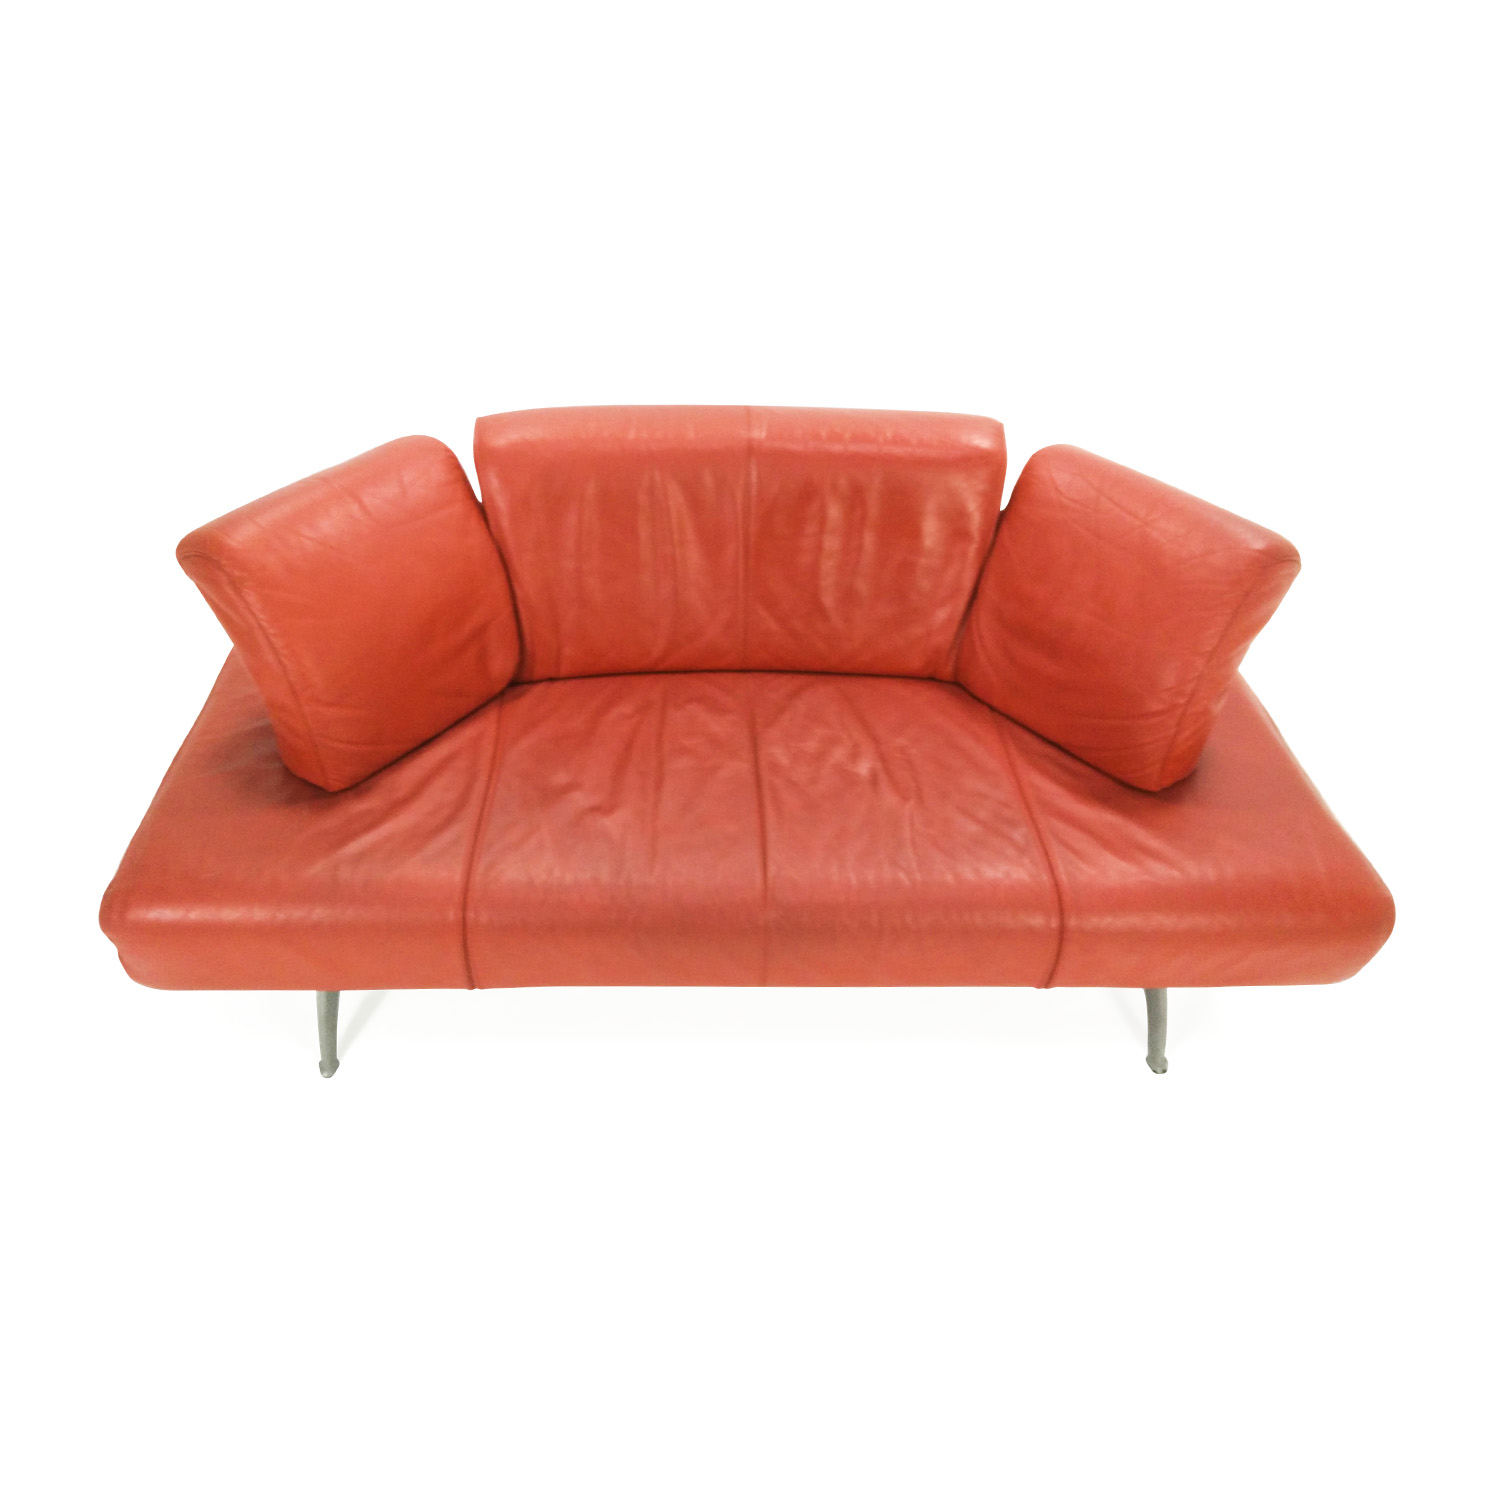 82% OFF Team by Wellis Team by Wellis Red Leather Sofa Sofas